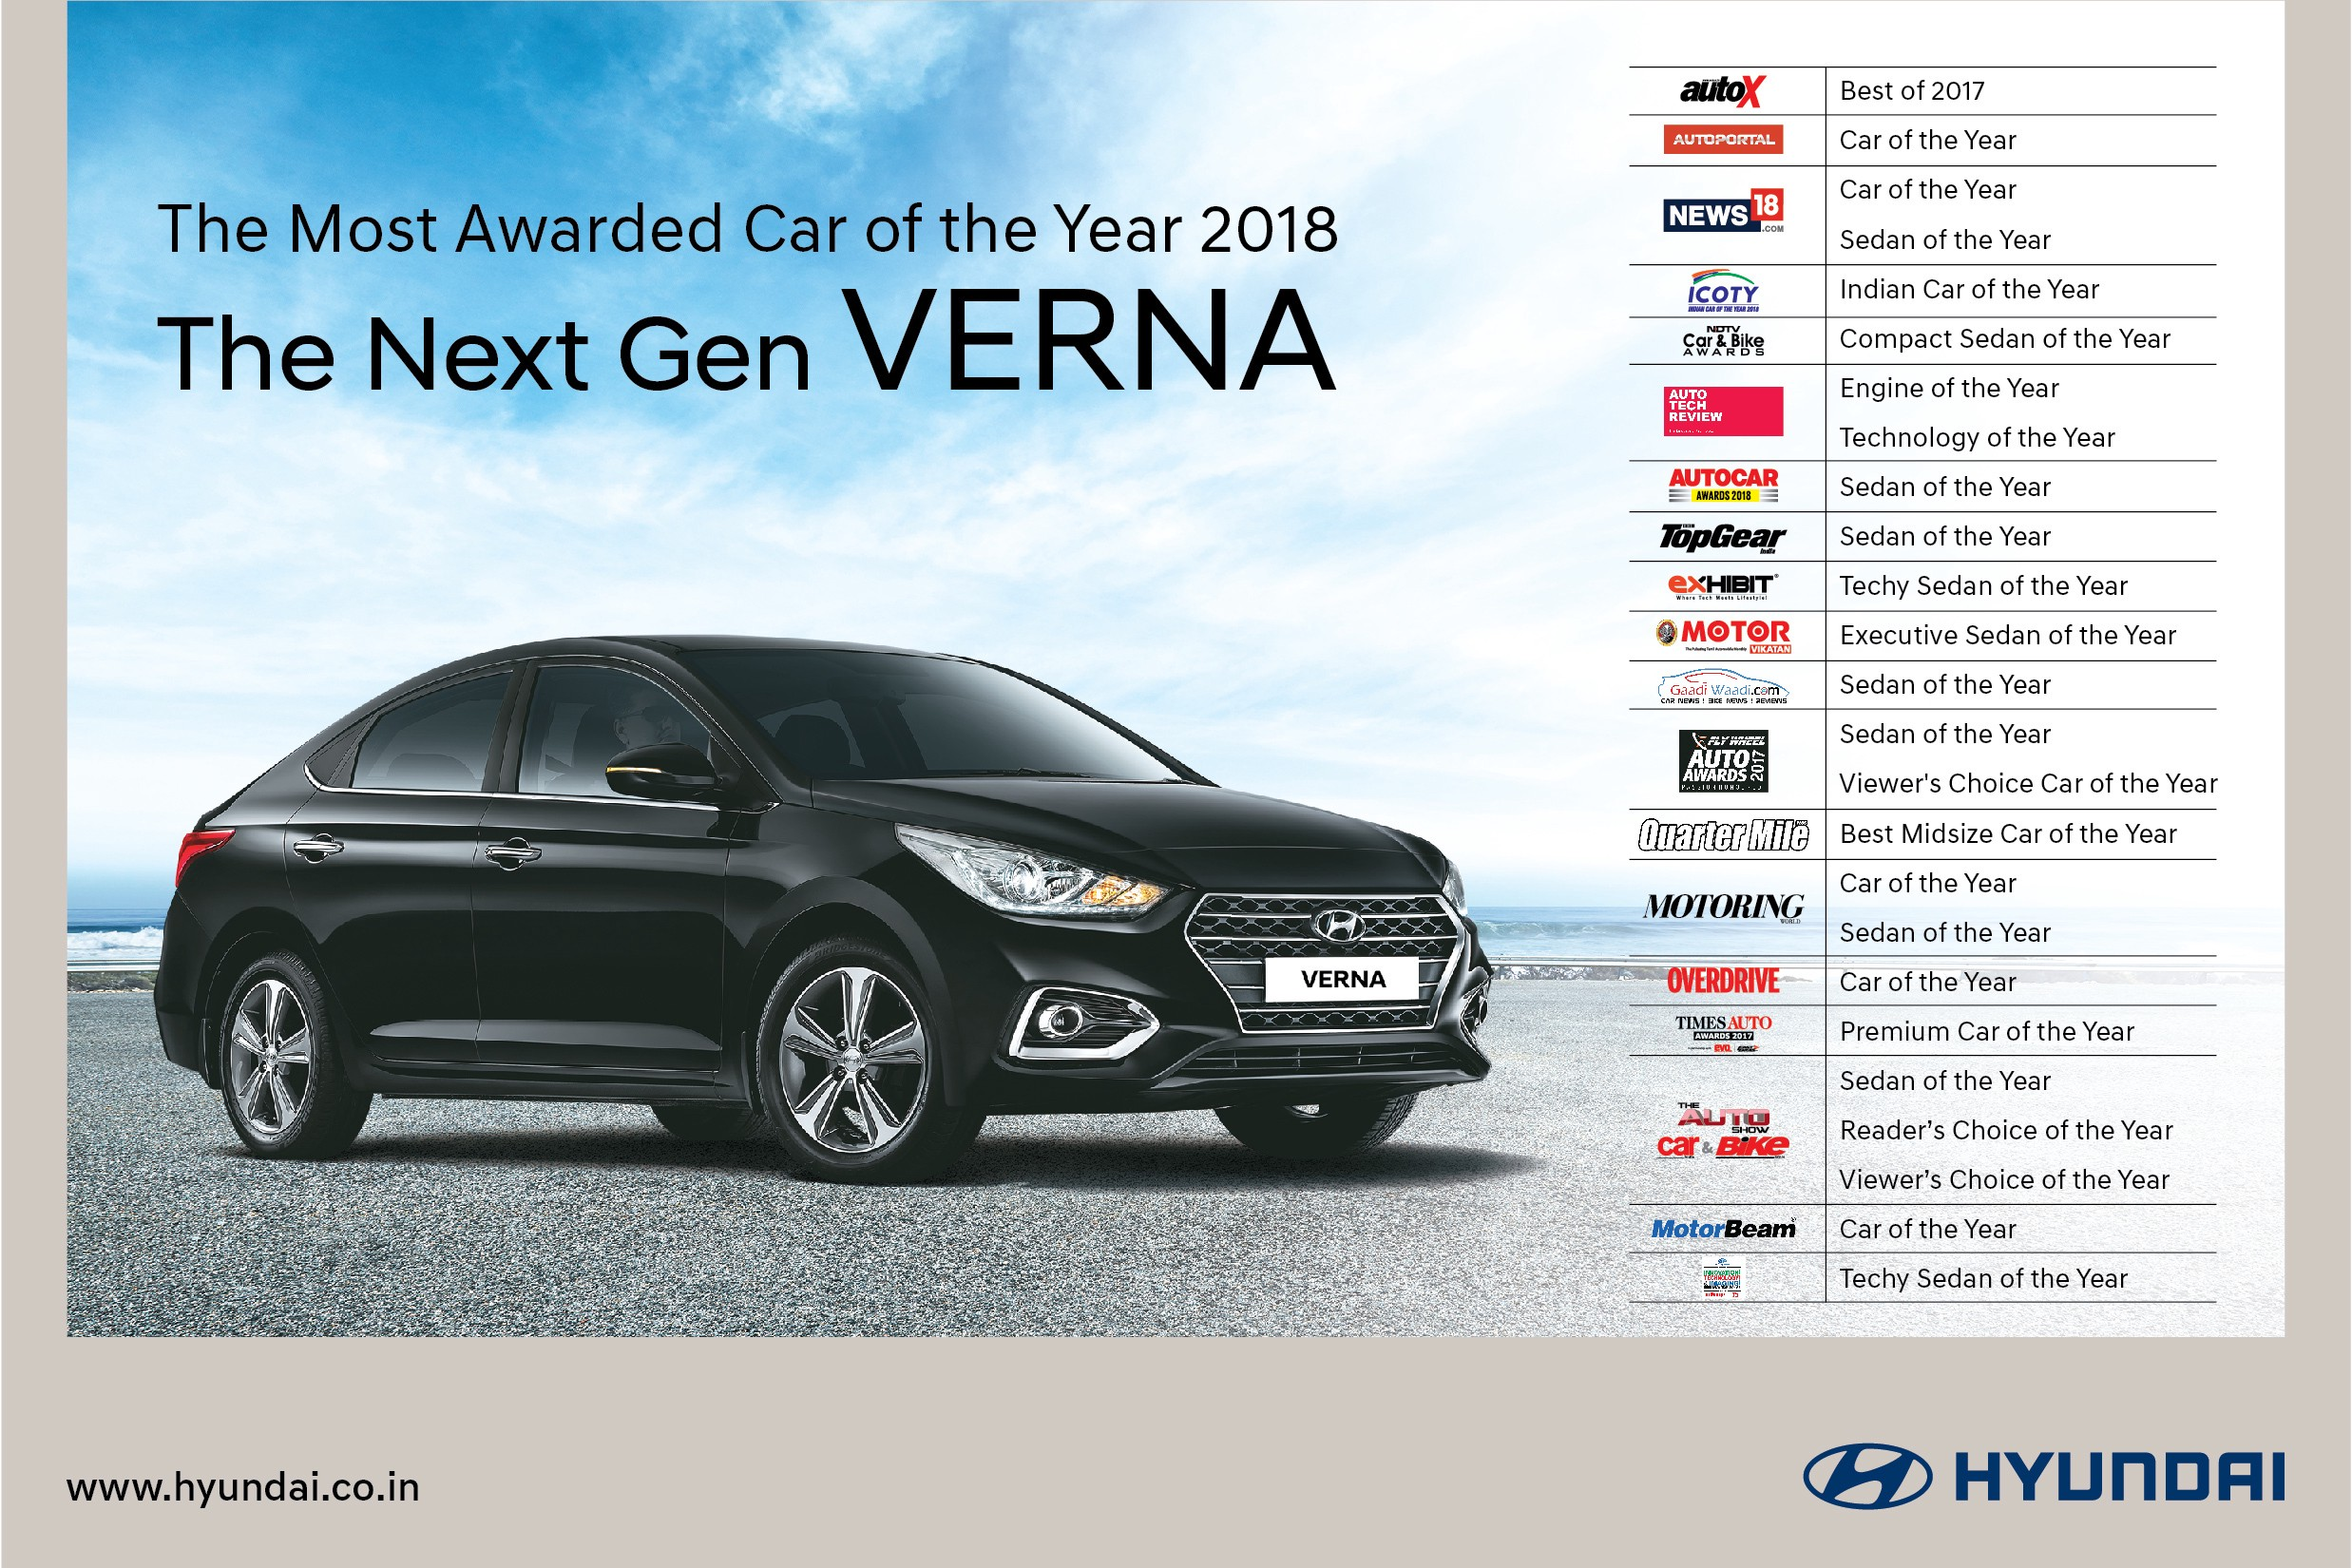 hyundai verna is india's most awarded 'car of the year' 2018